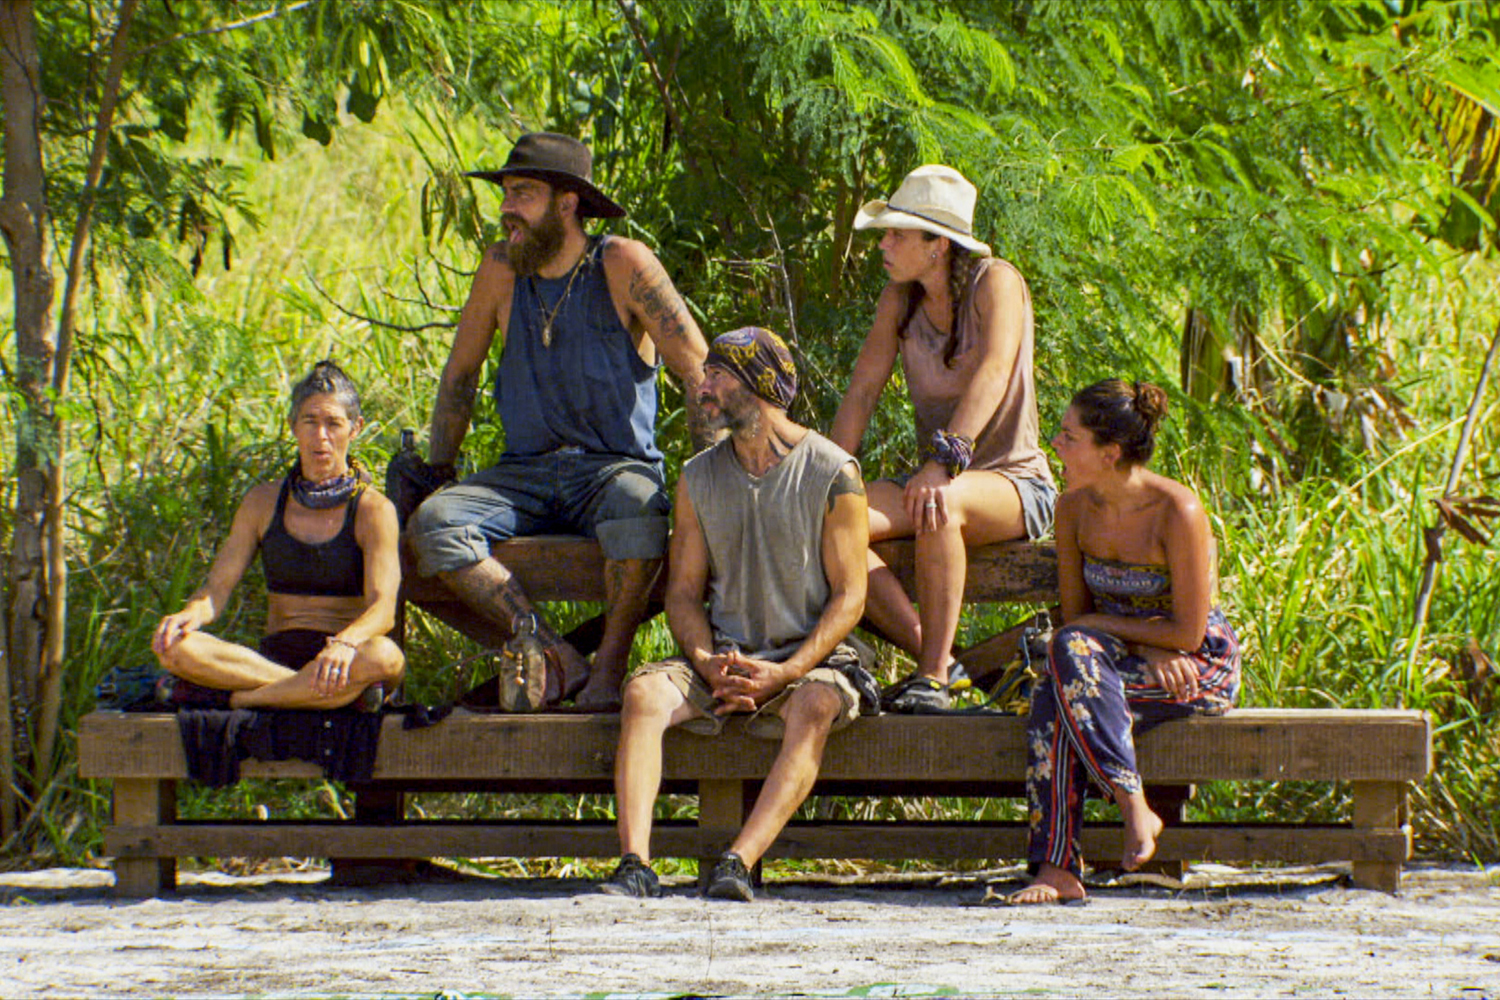 season finale episode of SURVIVOR: WINNERS AT WAR